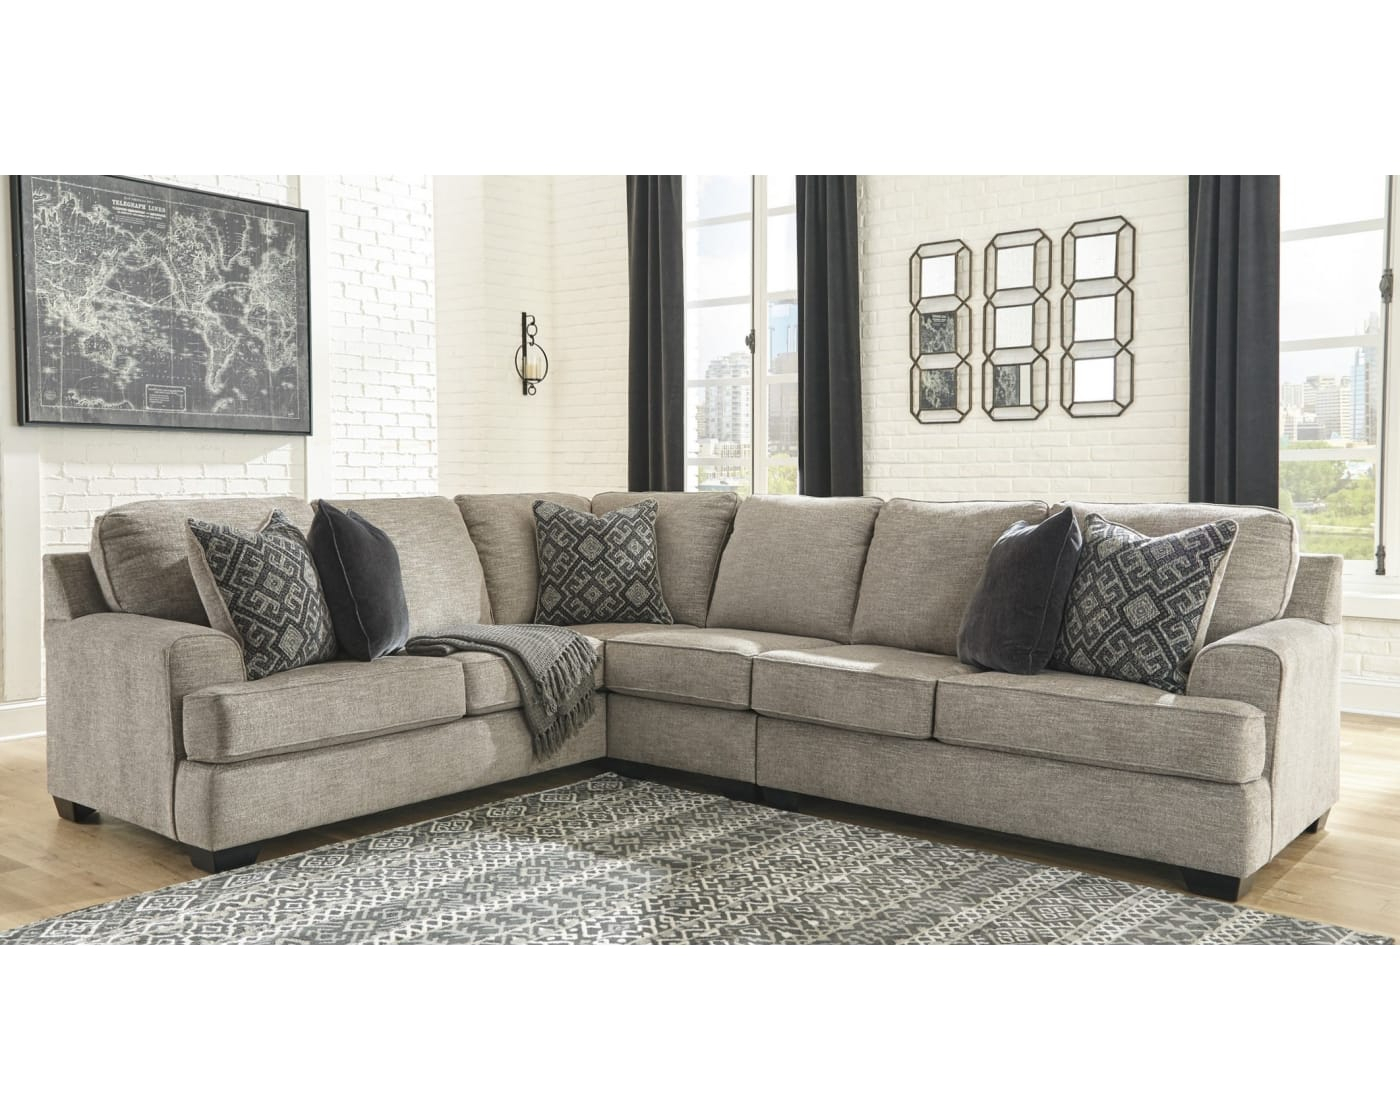 Bovarian Stone 3 Piece Right Facing Sectional Sofa With Dulce Right Sectional Sofas Twill Stone (View 5 of 15)